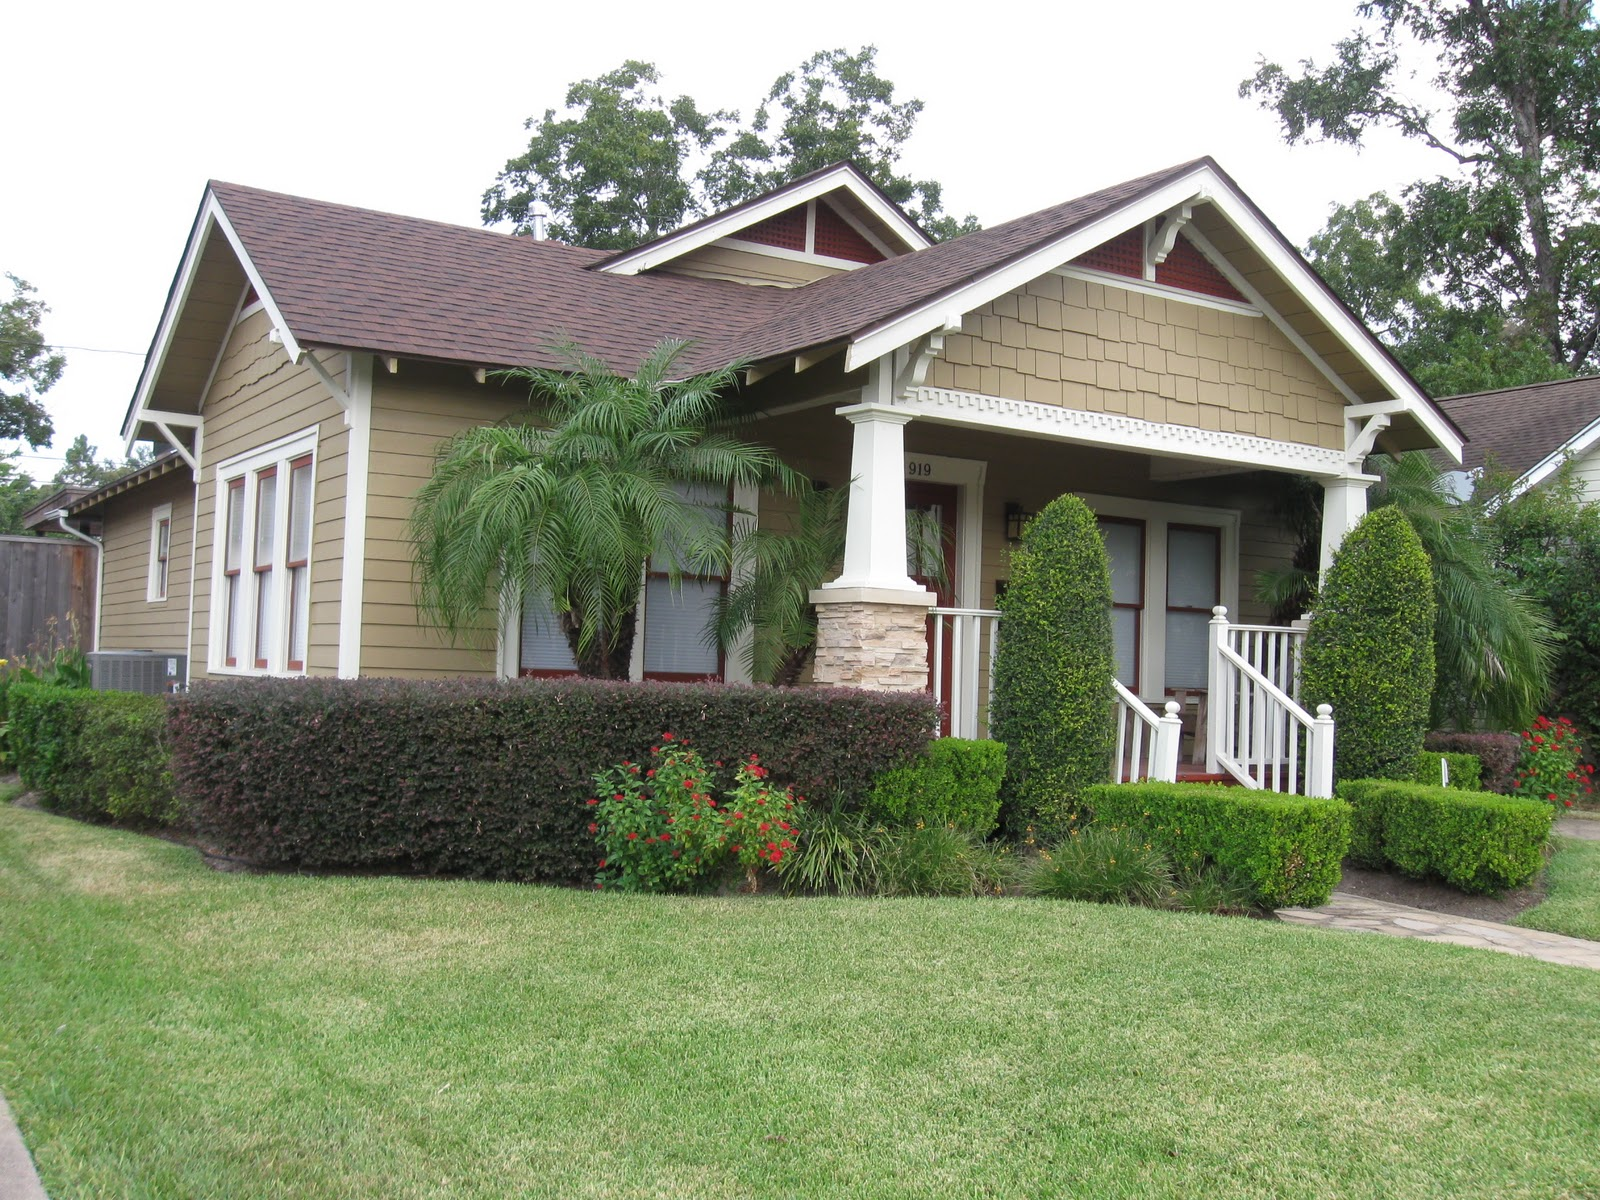 Cottage style homes american bungalow style homes picture for Model house bungalow type